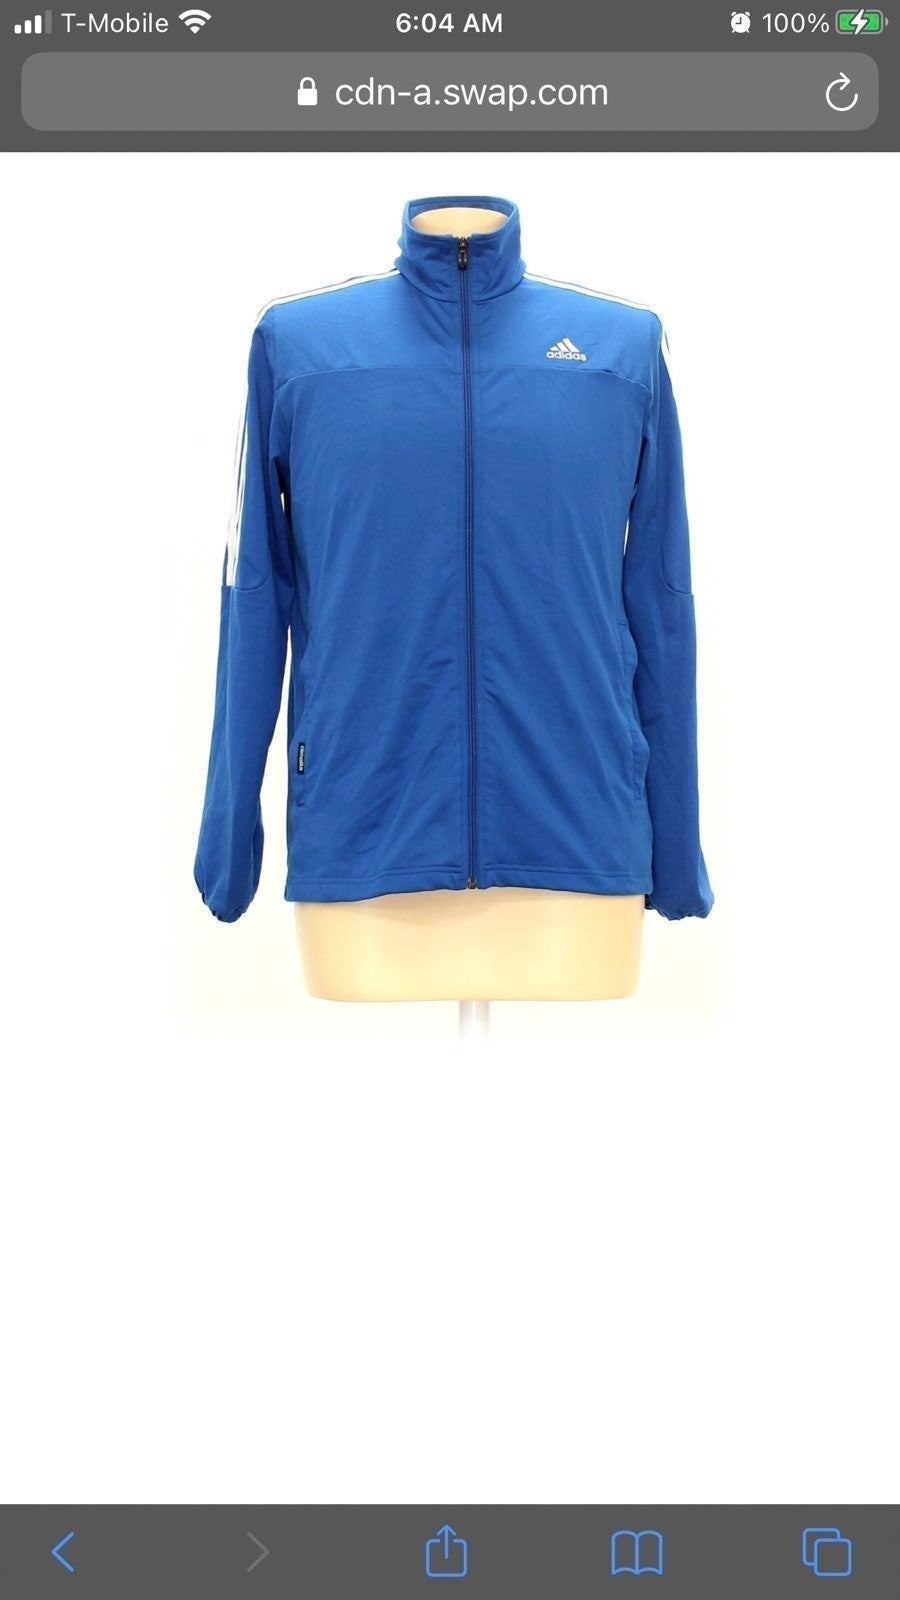 Adidas Track Jacket in Blue